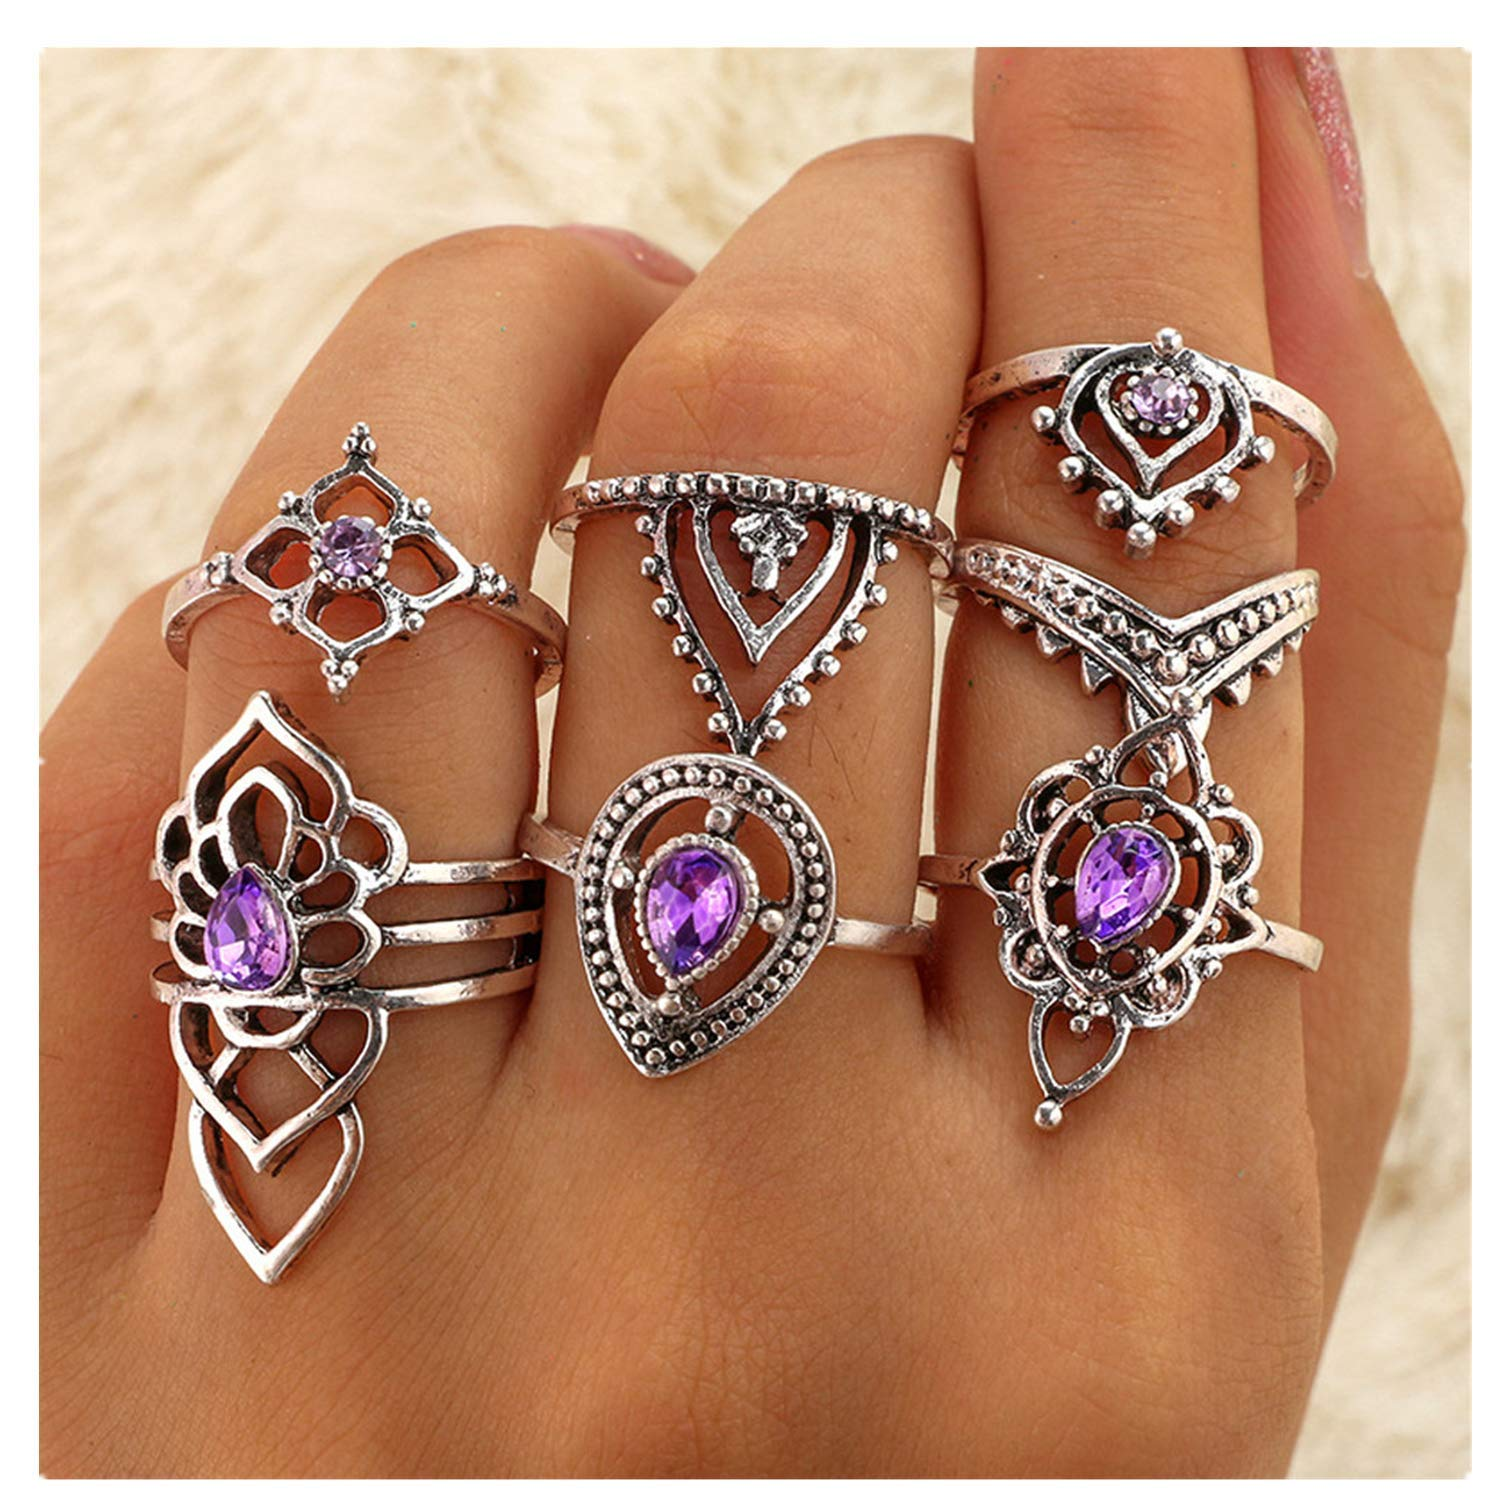 HUAMING Fashion Women Punk Silver Boho Vintage Stack Plain Knuckle Ring Jewelry Full Finger Tip Rings Set Multiple Turkish Style Choice (F)